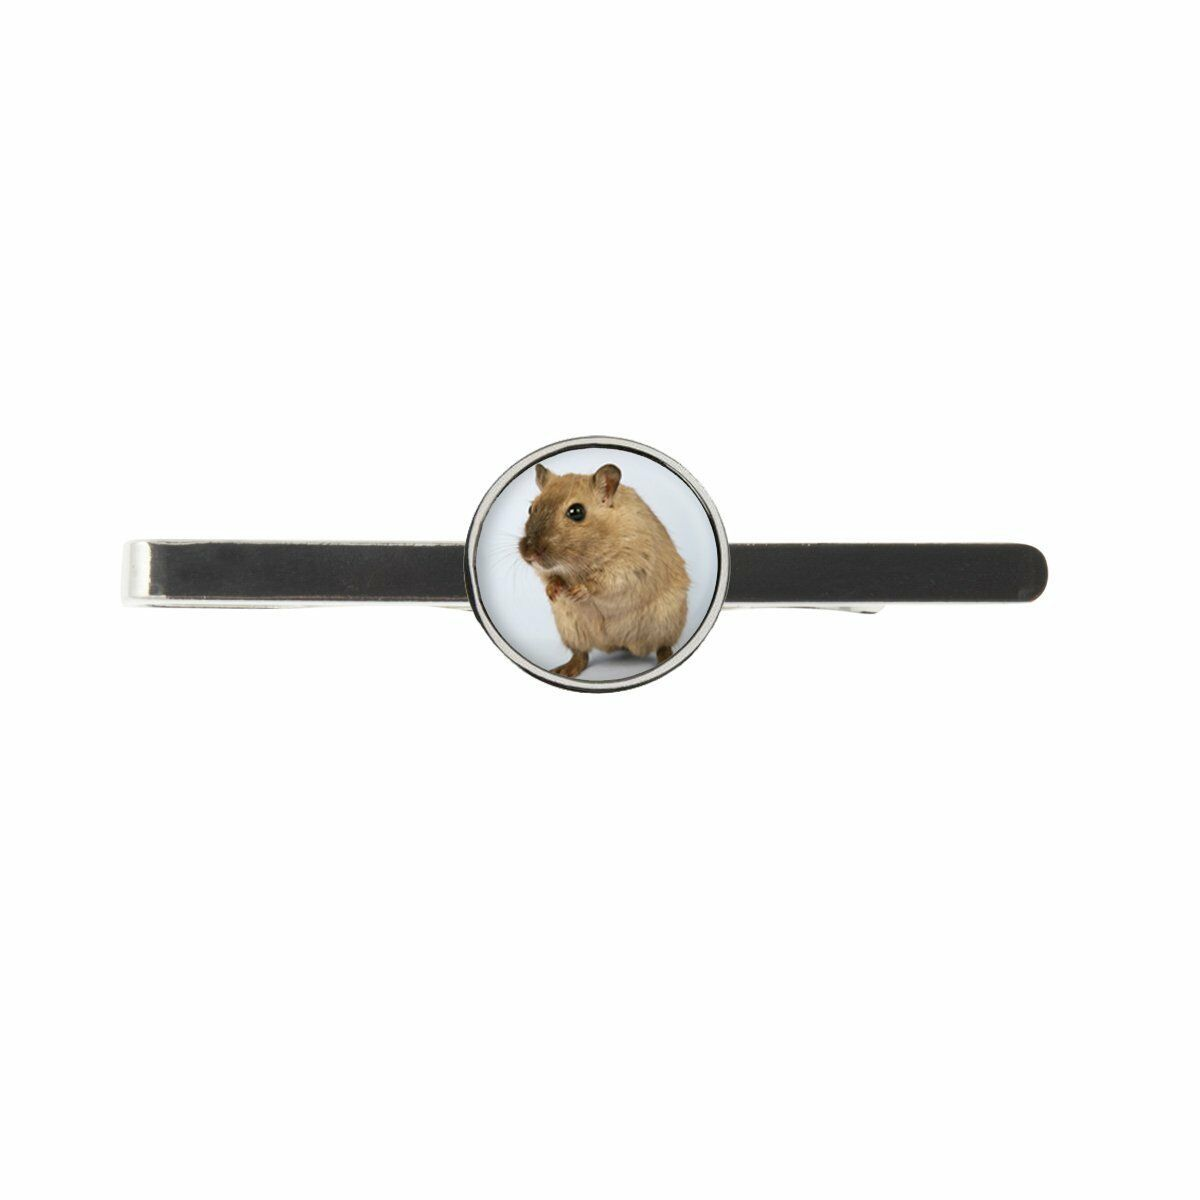 Gerbil Mens Tie Slide Ideal Birthday Fathers Day Gift C515